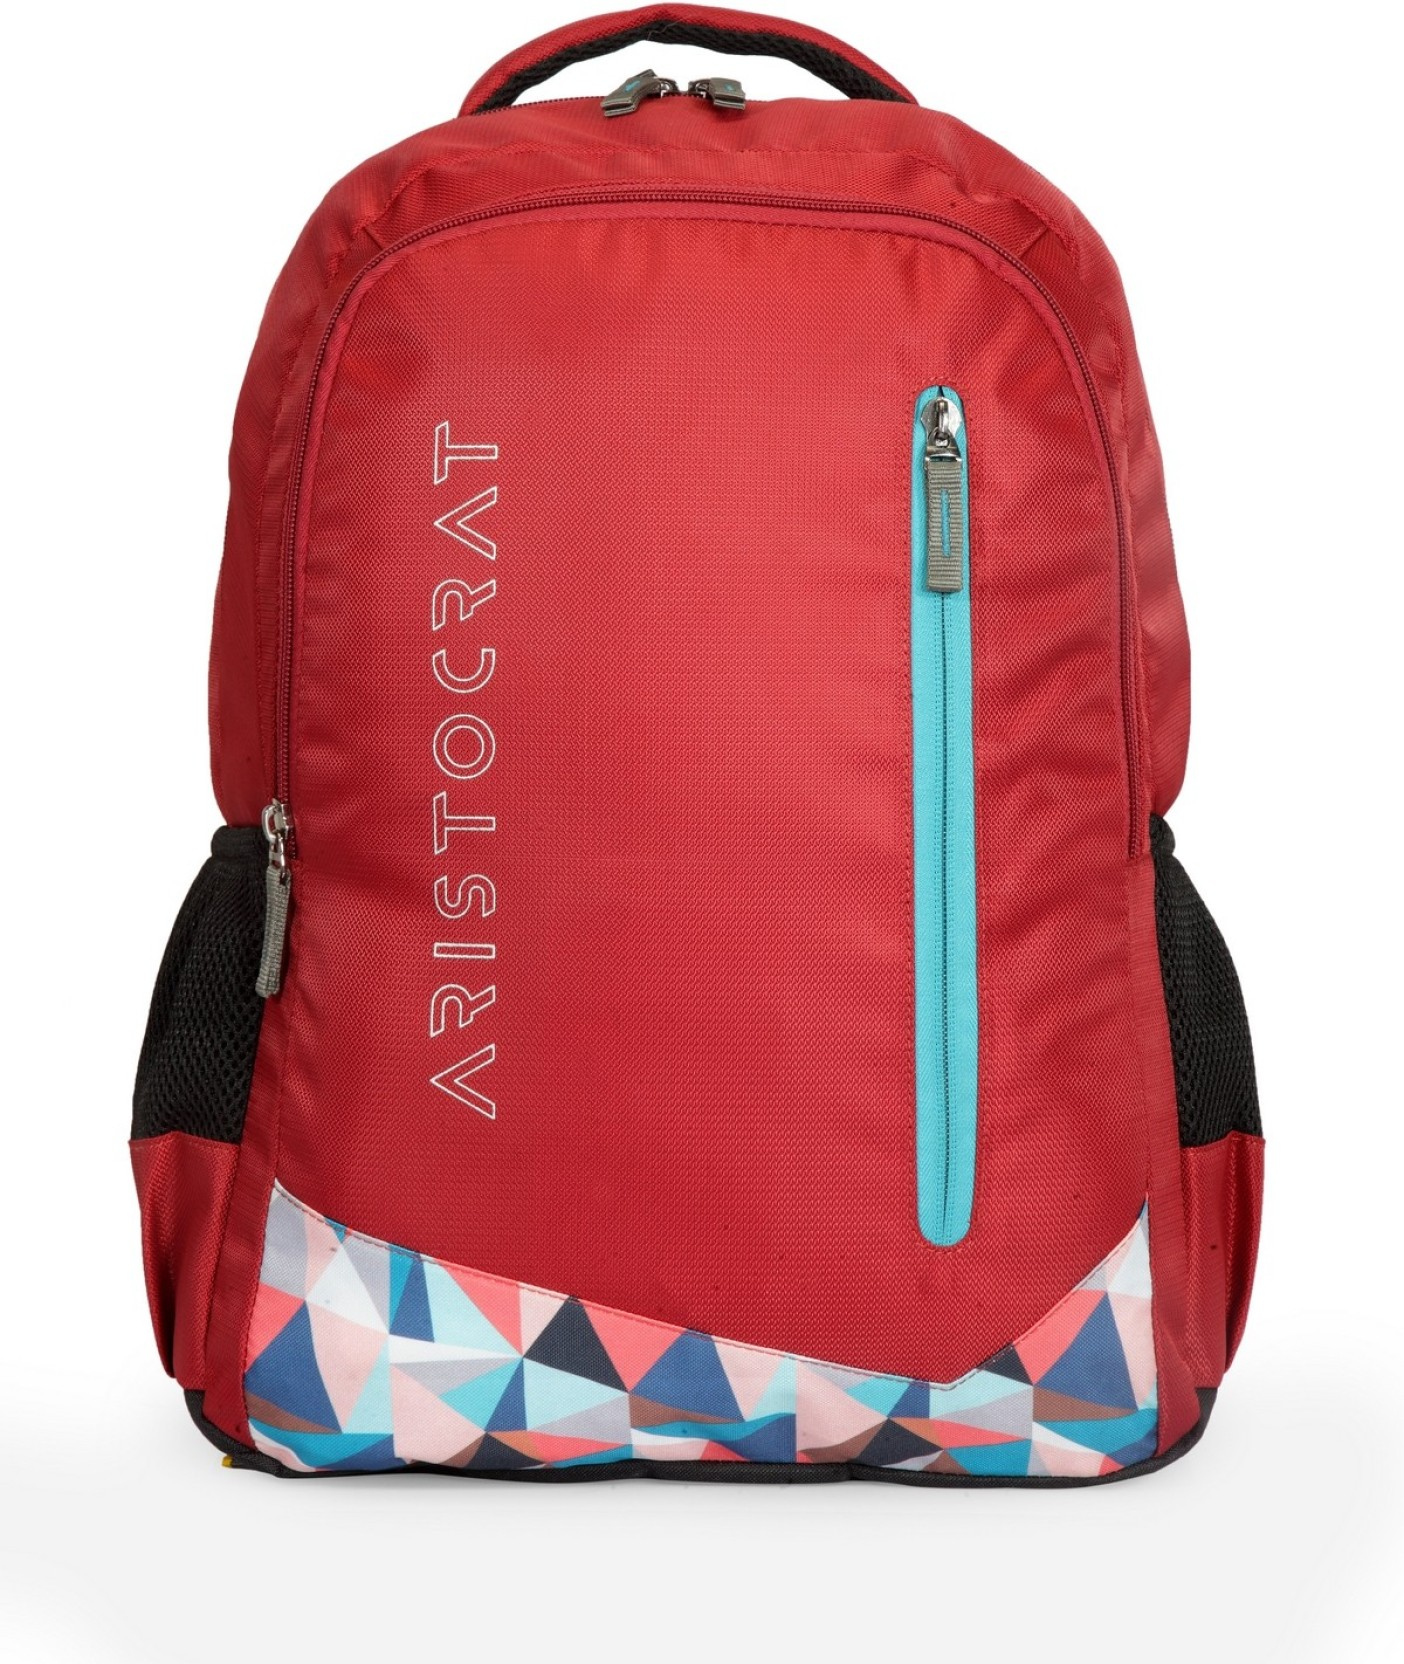 9309a89a5314 Aristocrat Wego 1 School Bag 34 L Backpack Red - Price in India ...